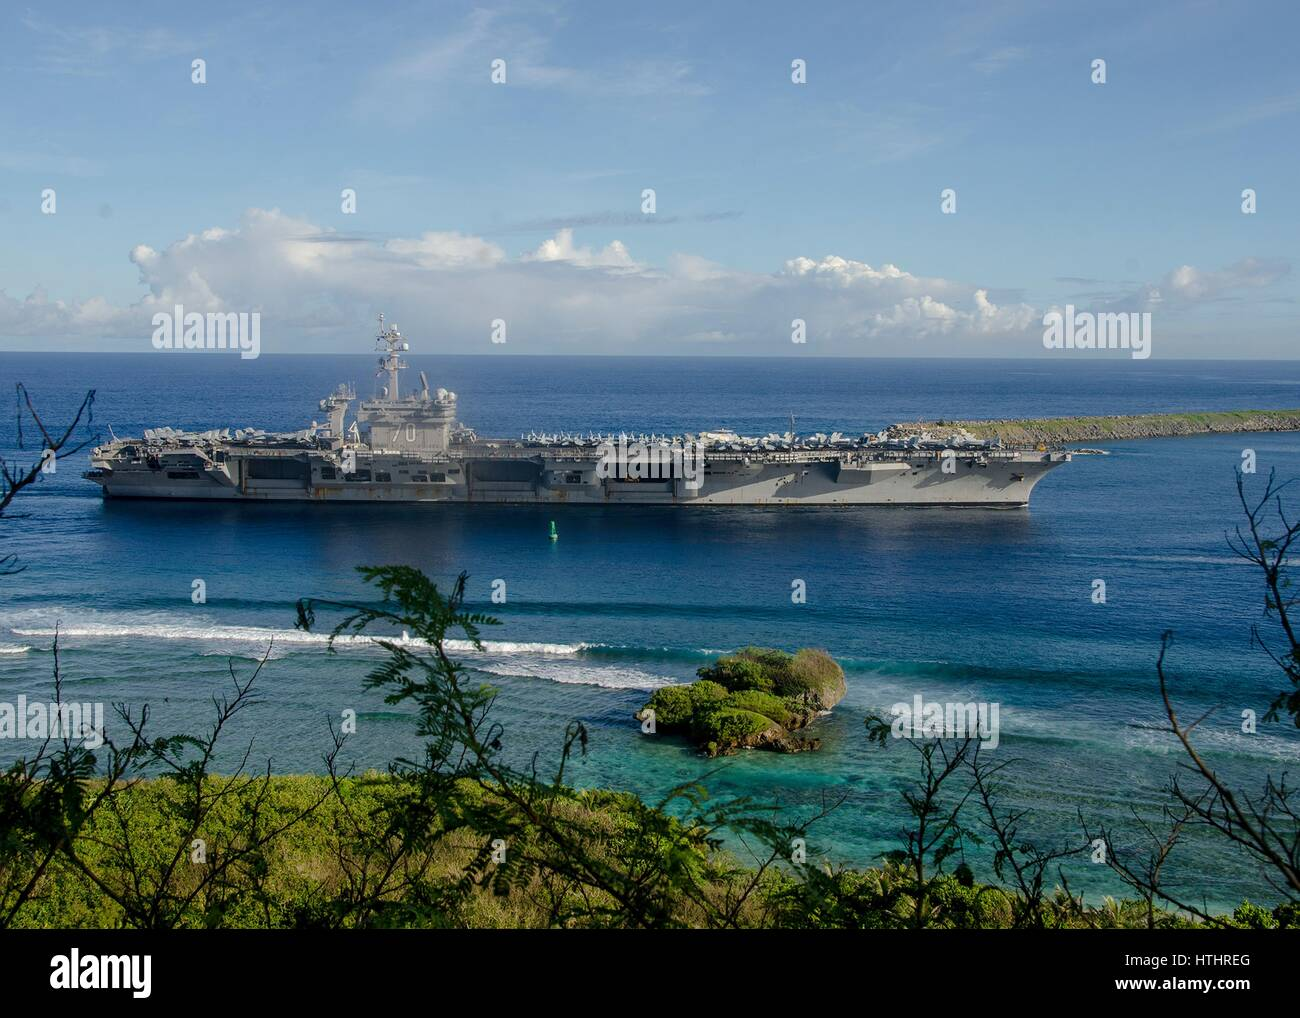 The US Navy Nimitz-class aircraft carrier USS Carl Vinson arrives at the Naval Base Guam February 10, 2017 in Santa - Stock Image